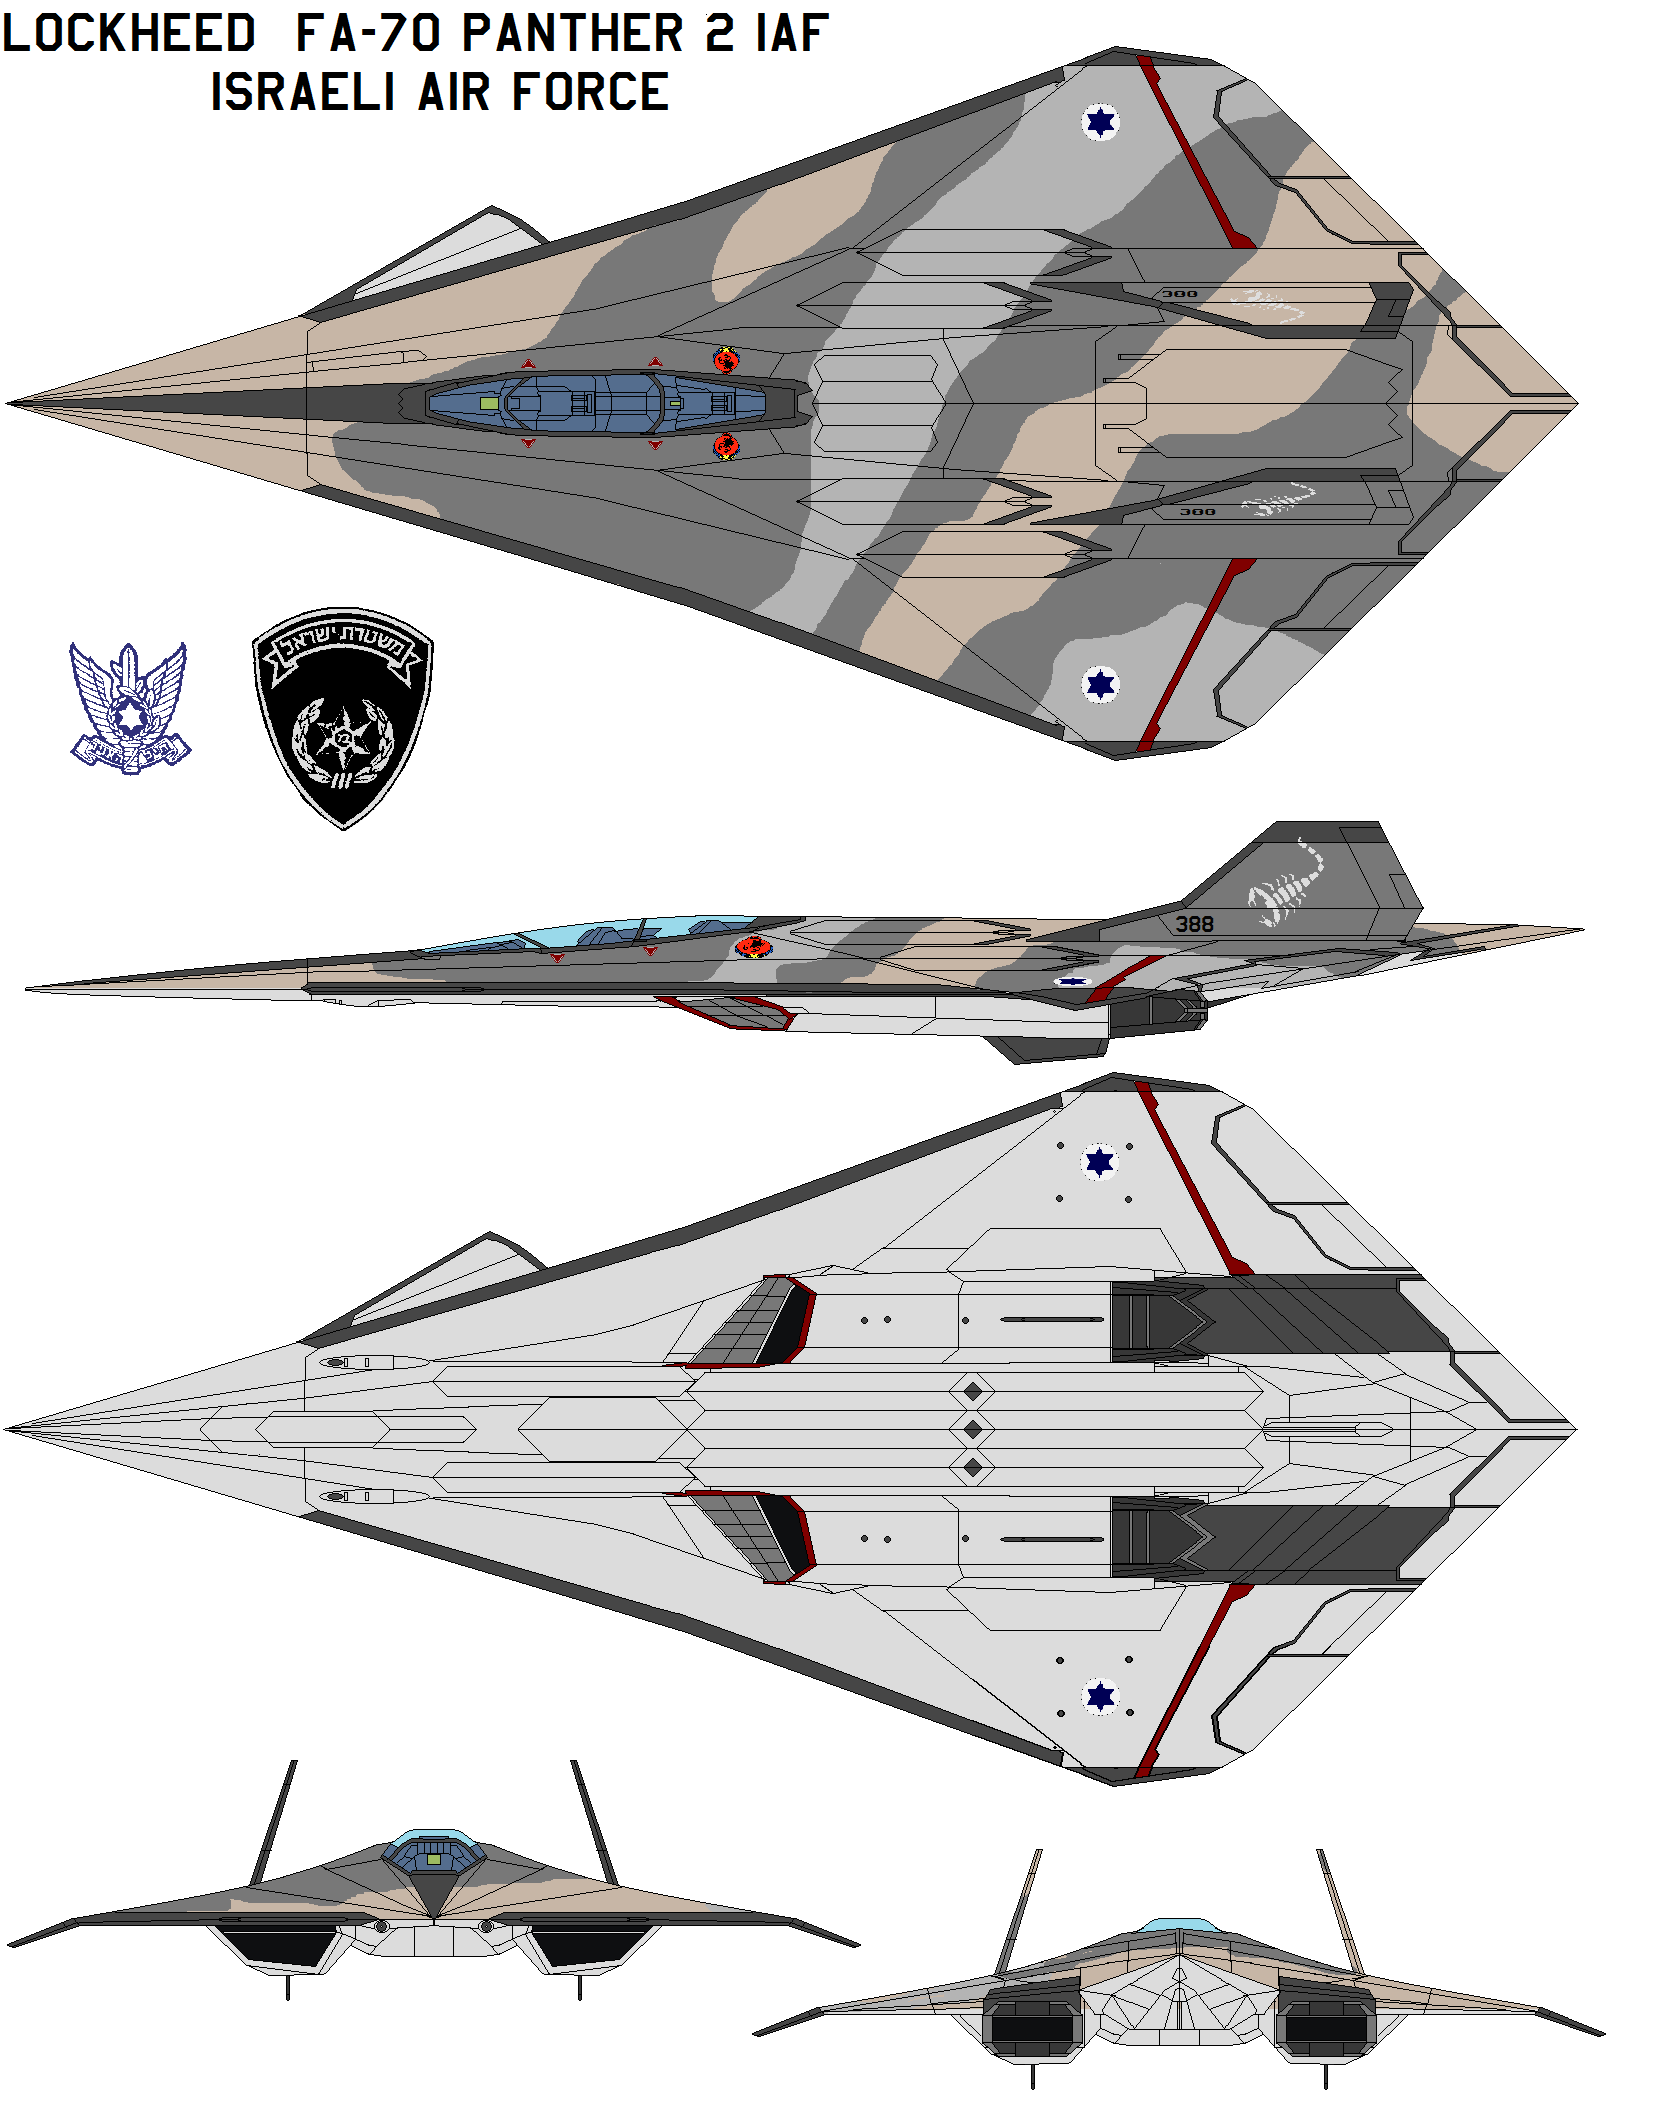 Lockheed  FA-70 Panther 2 IAF by bagera3005